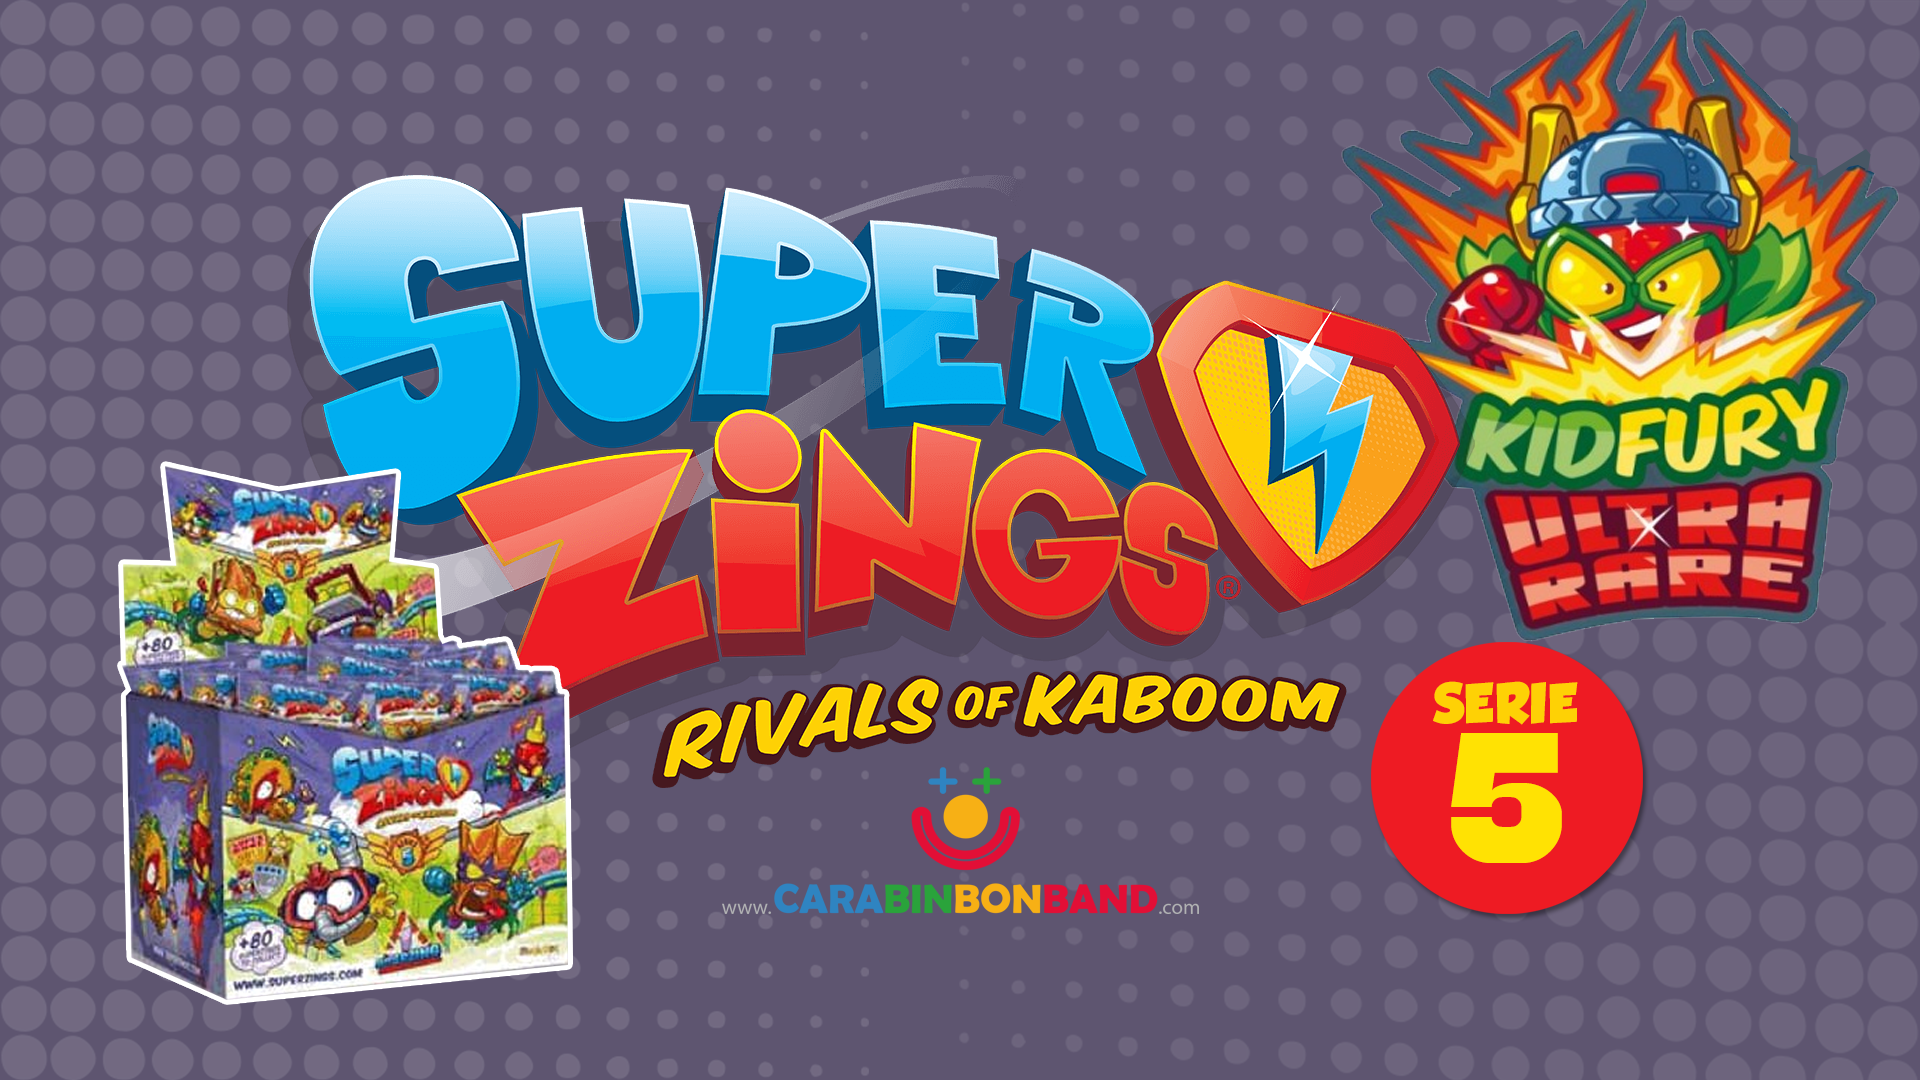 SUPERZINGS SERIES 5 - First images and release date - By CARA BIN BON BAND